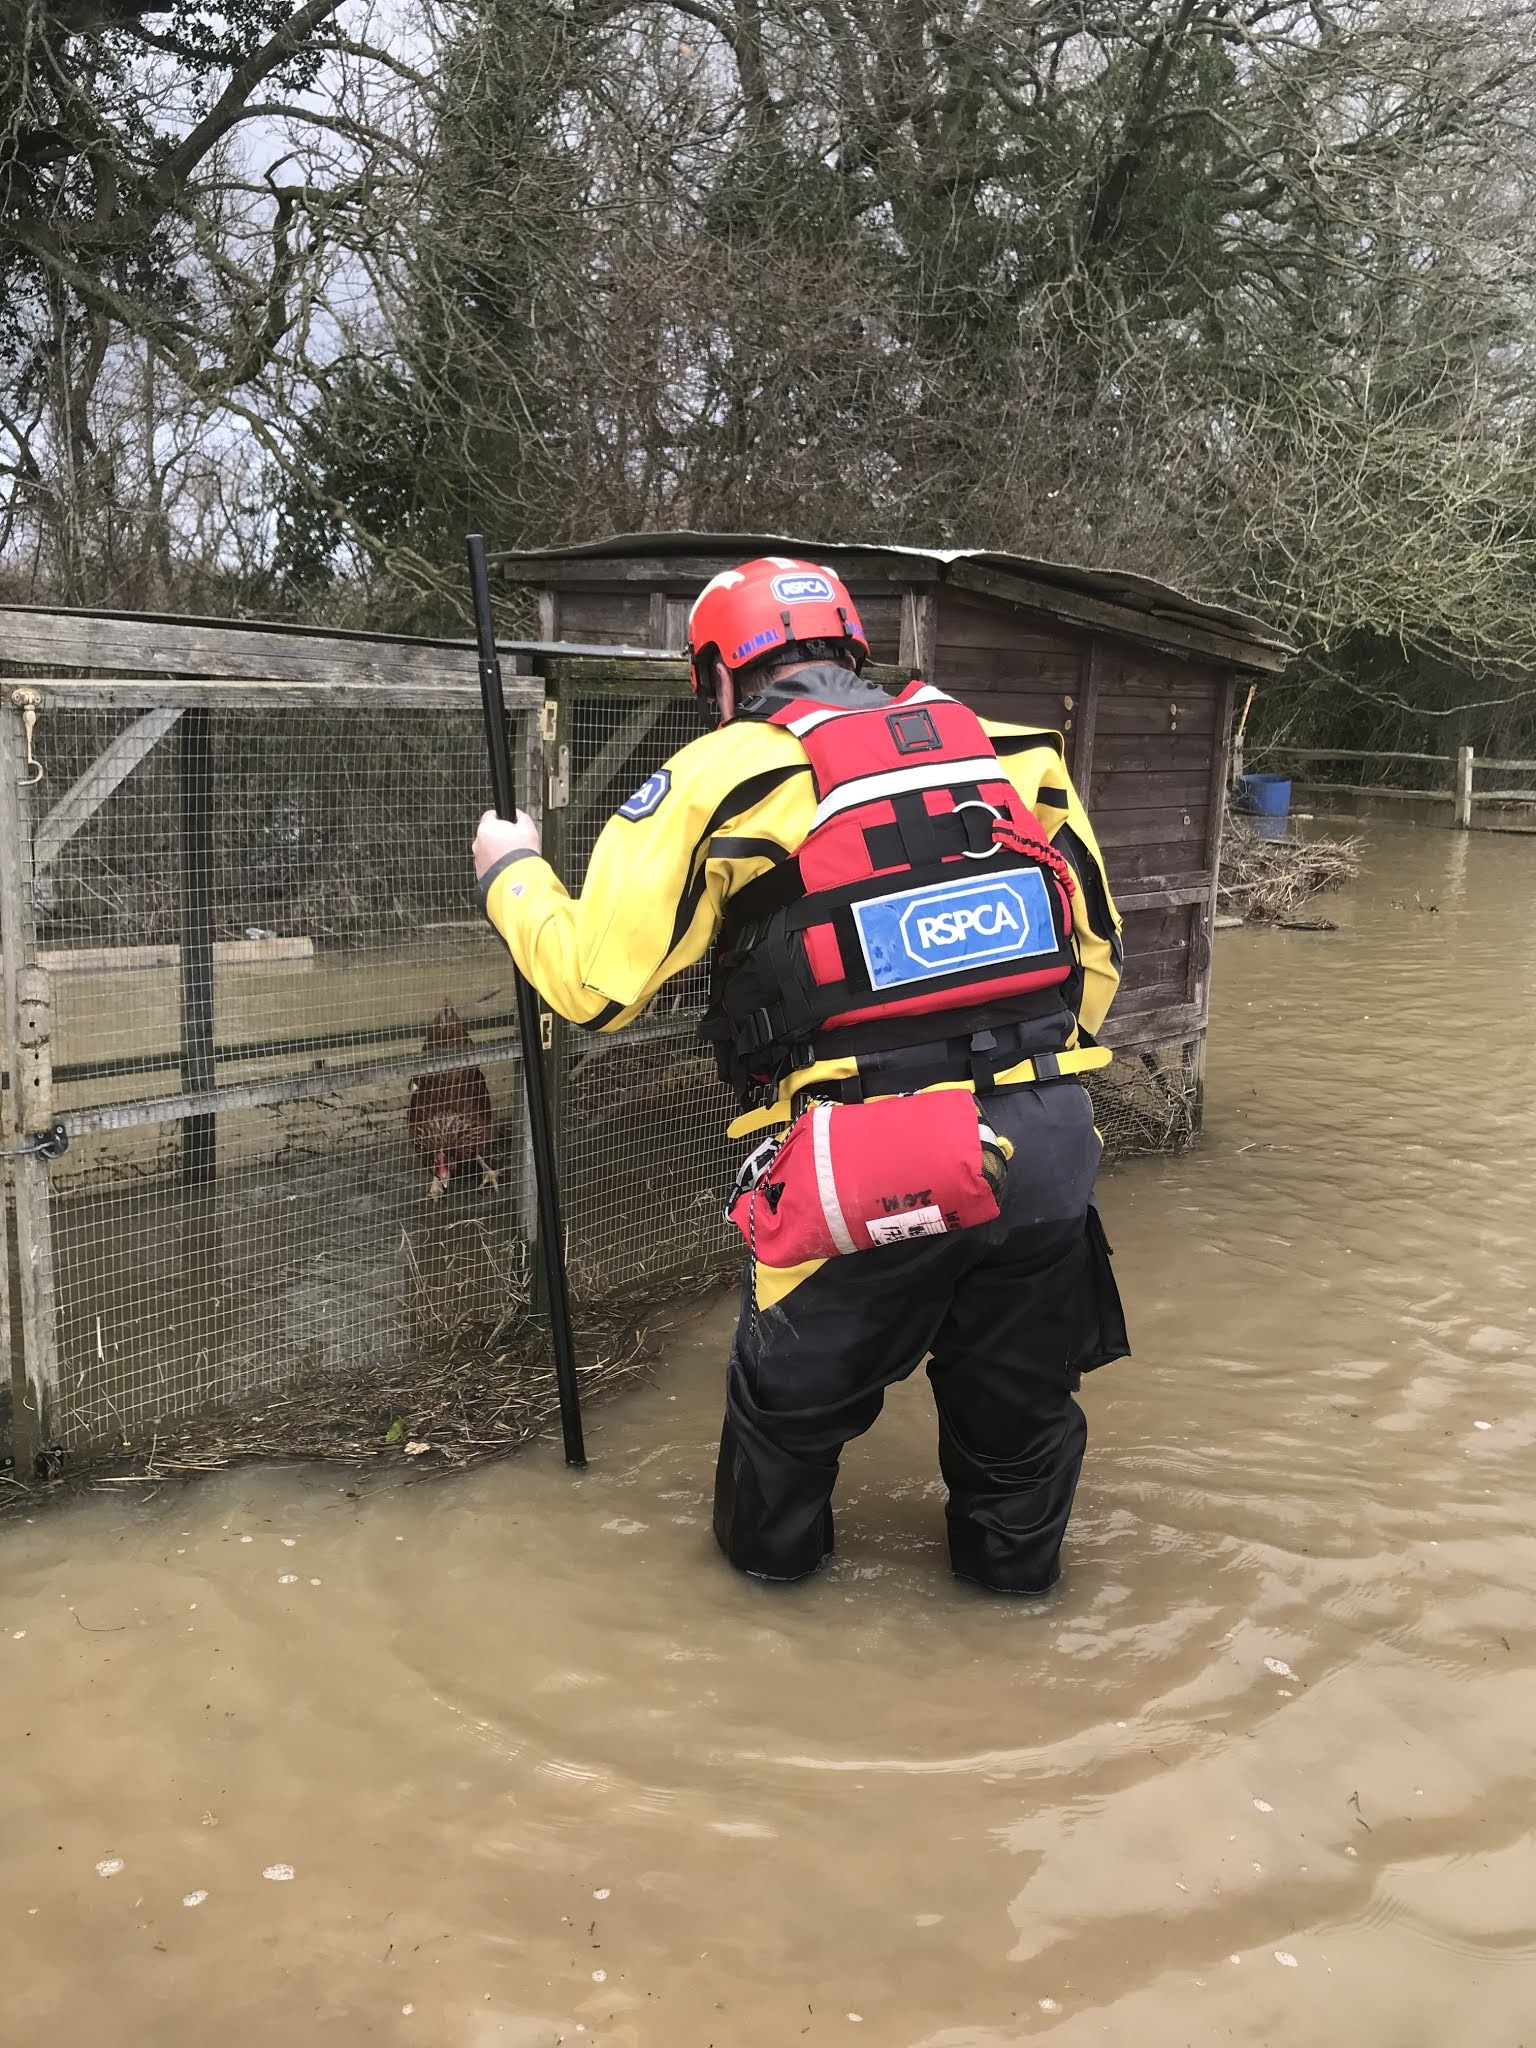 The team saved six chickens which were from their flooded coups in Surrey (RSPCA/PA)